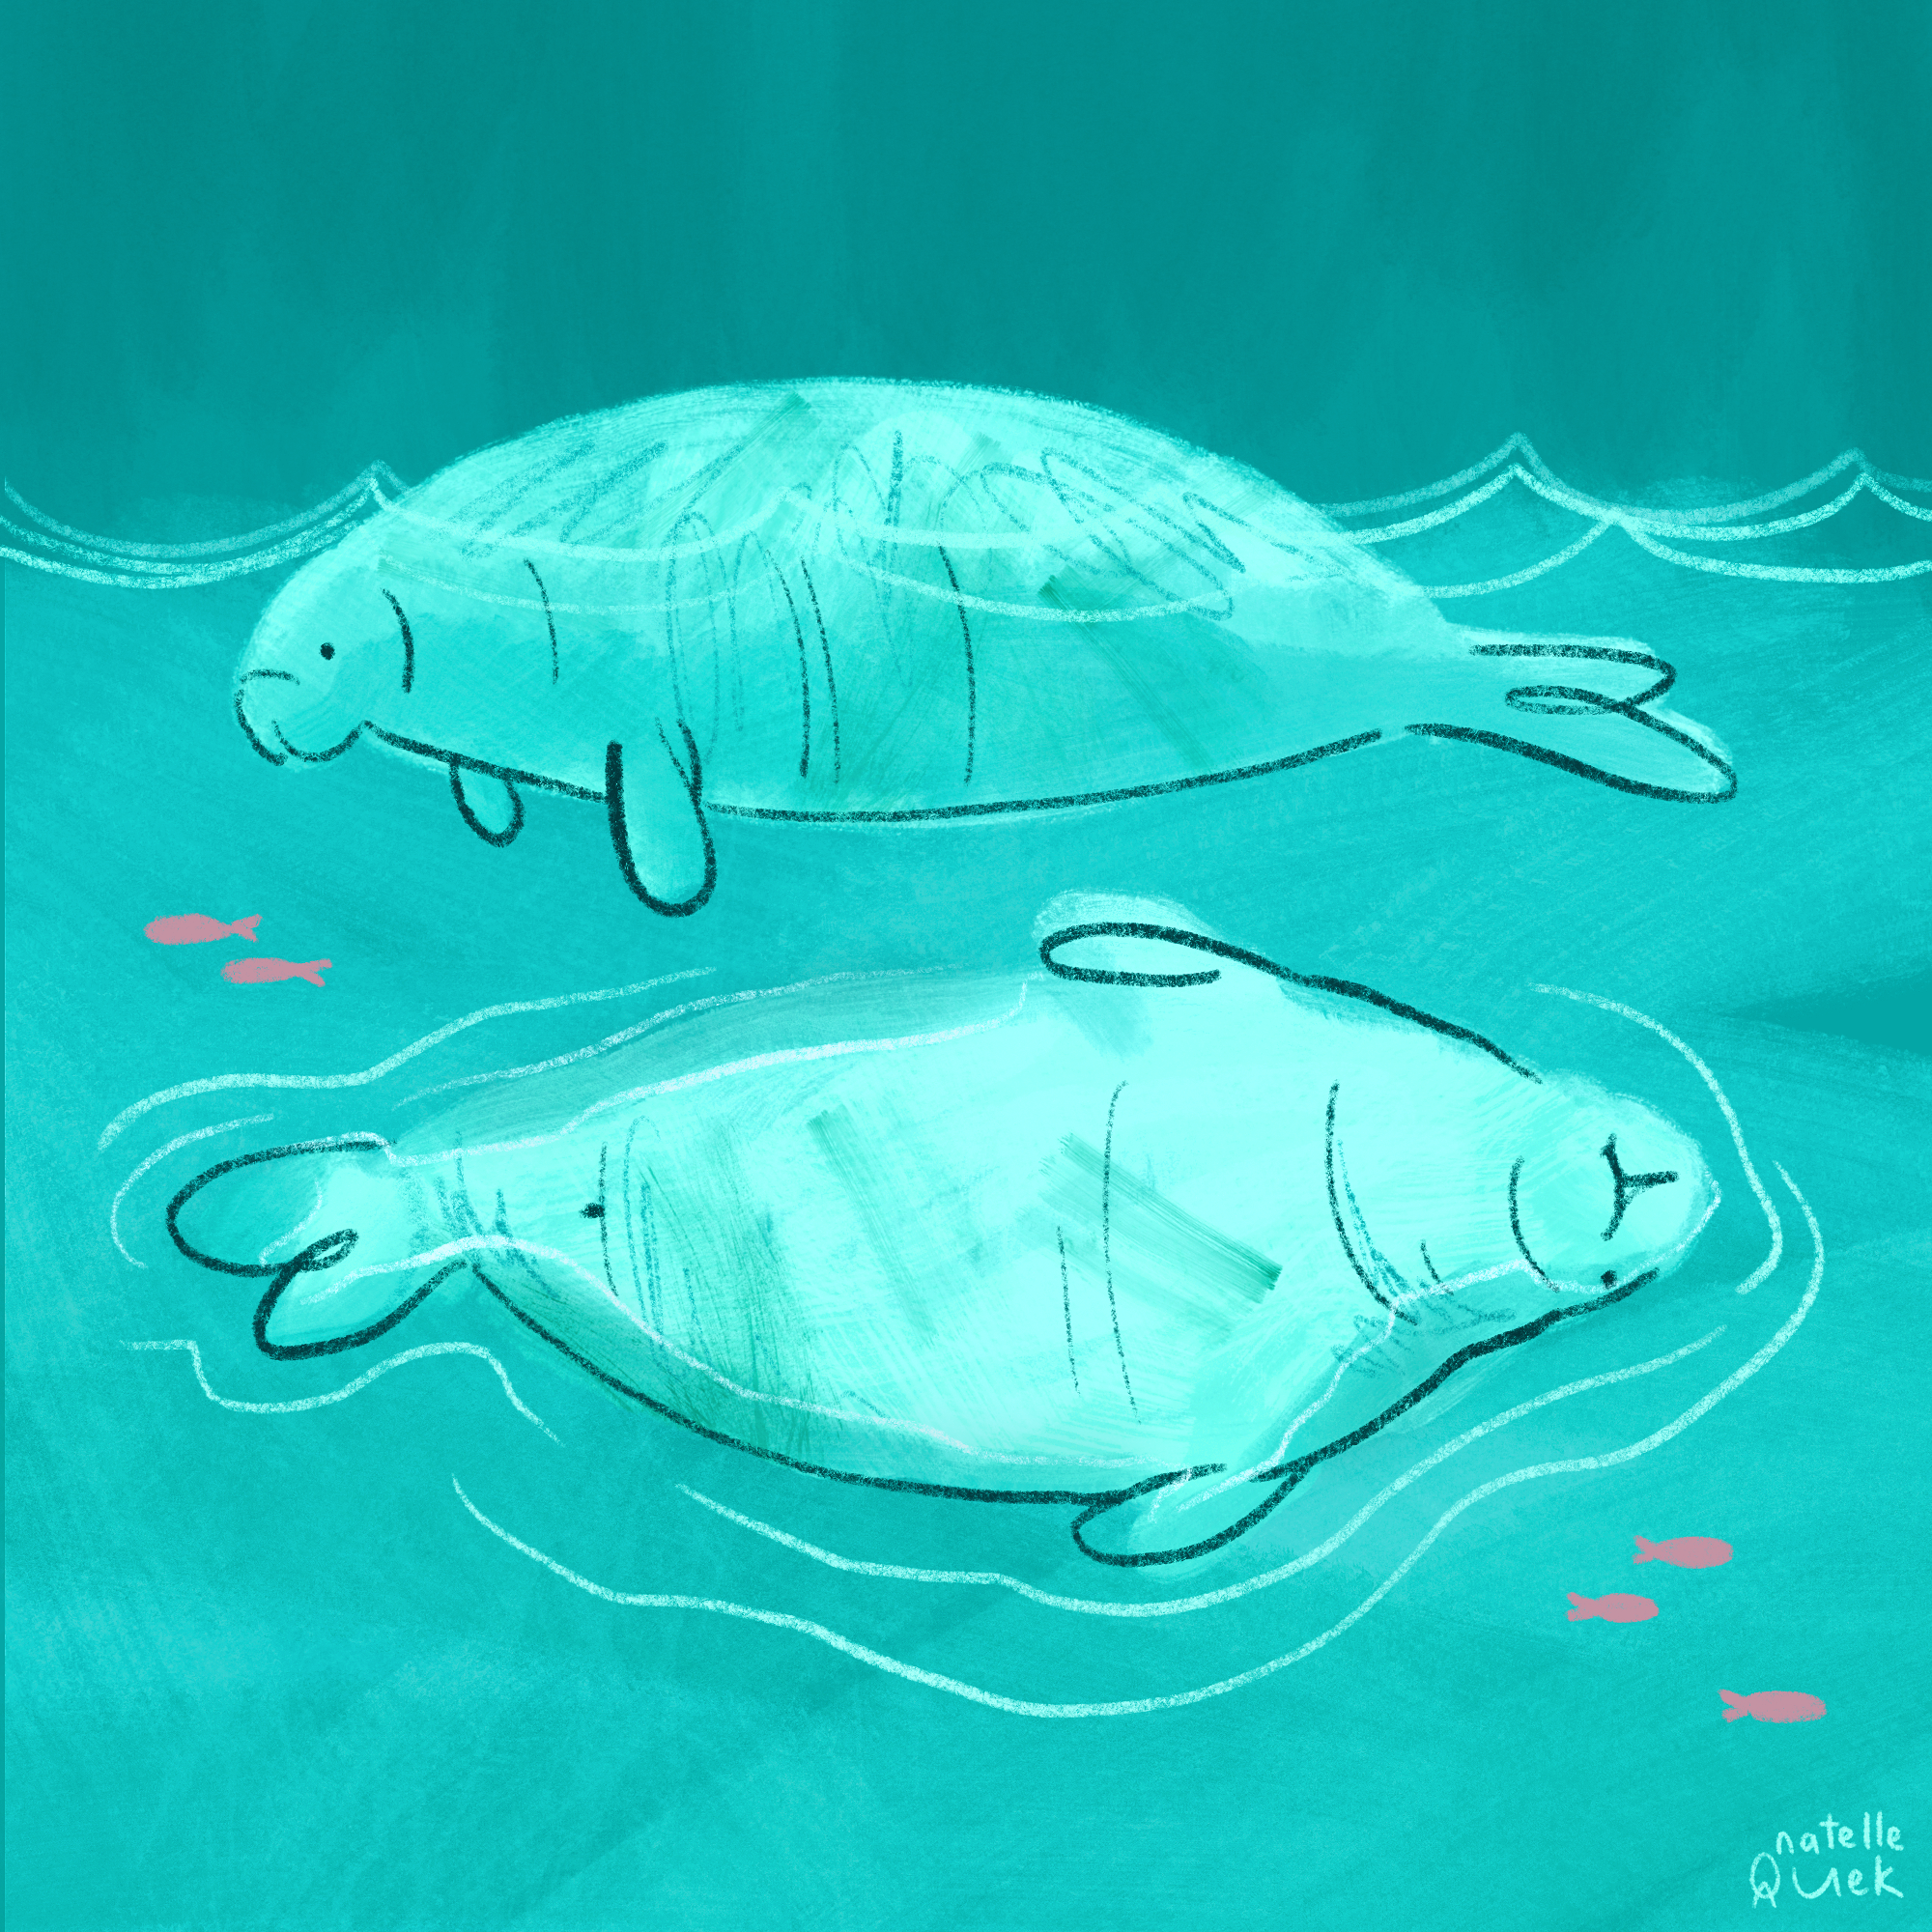 Rich turquoise background qith an even brighter outline of two dugongs, drawn around with crayons strokes. One is facing left, seen from the side; the second is below and facing belly up, their snouts, flippers and tails are little and round. There are five very small pink fish dotted aorund.